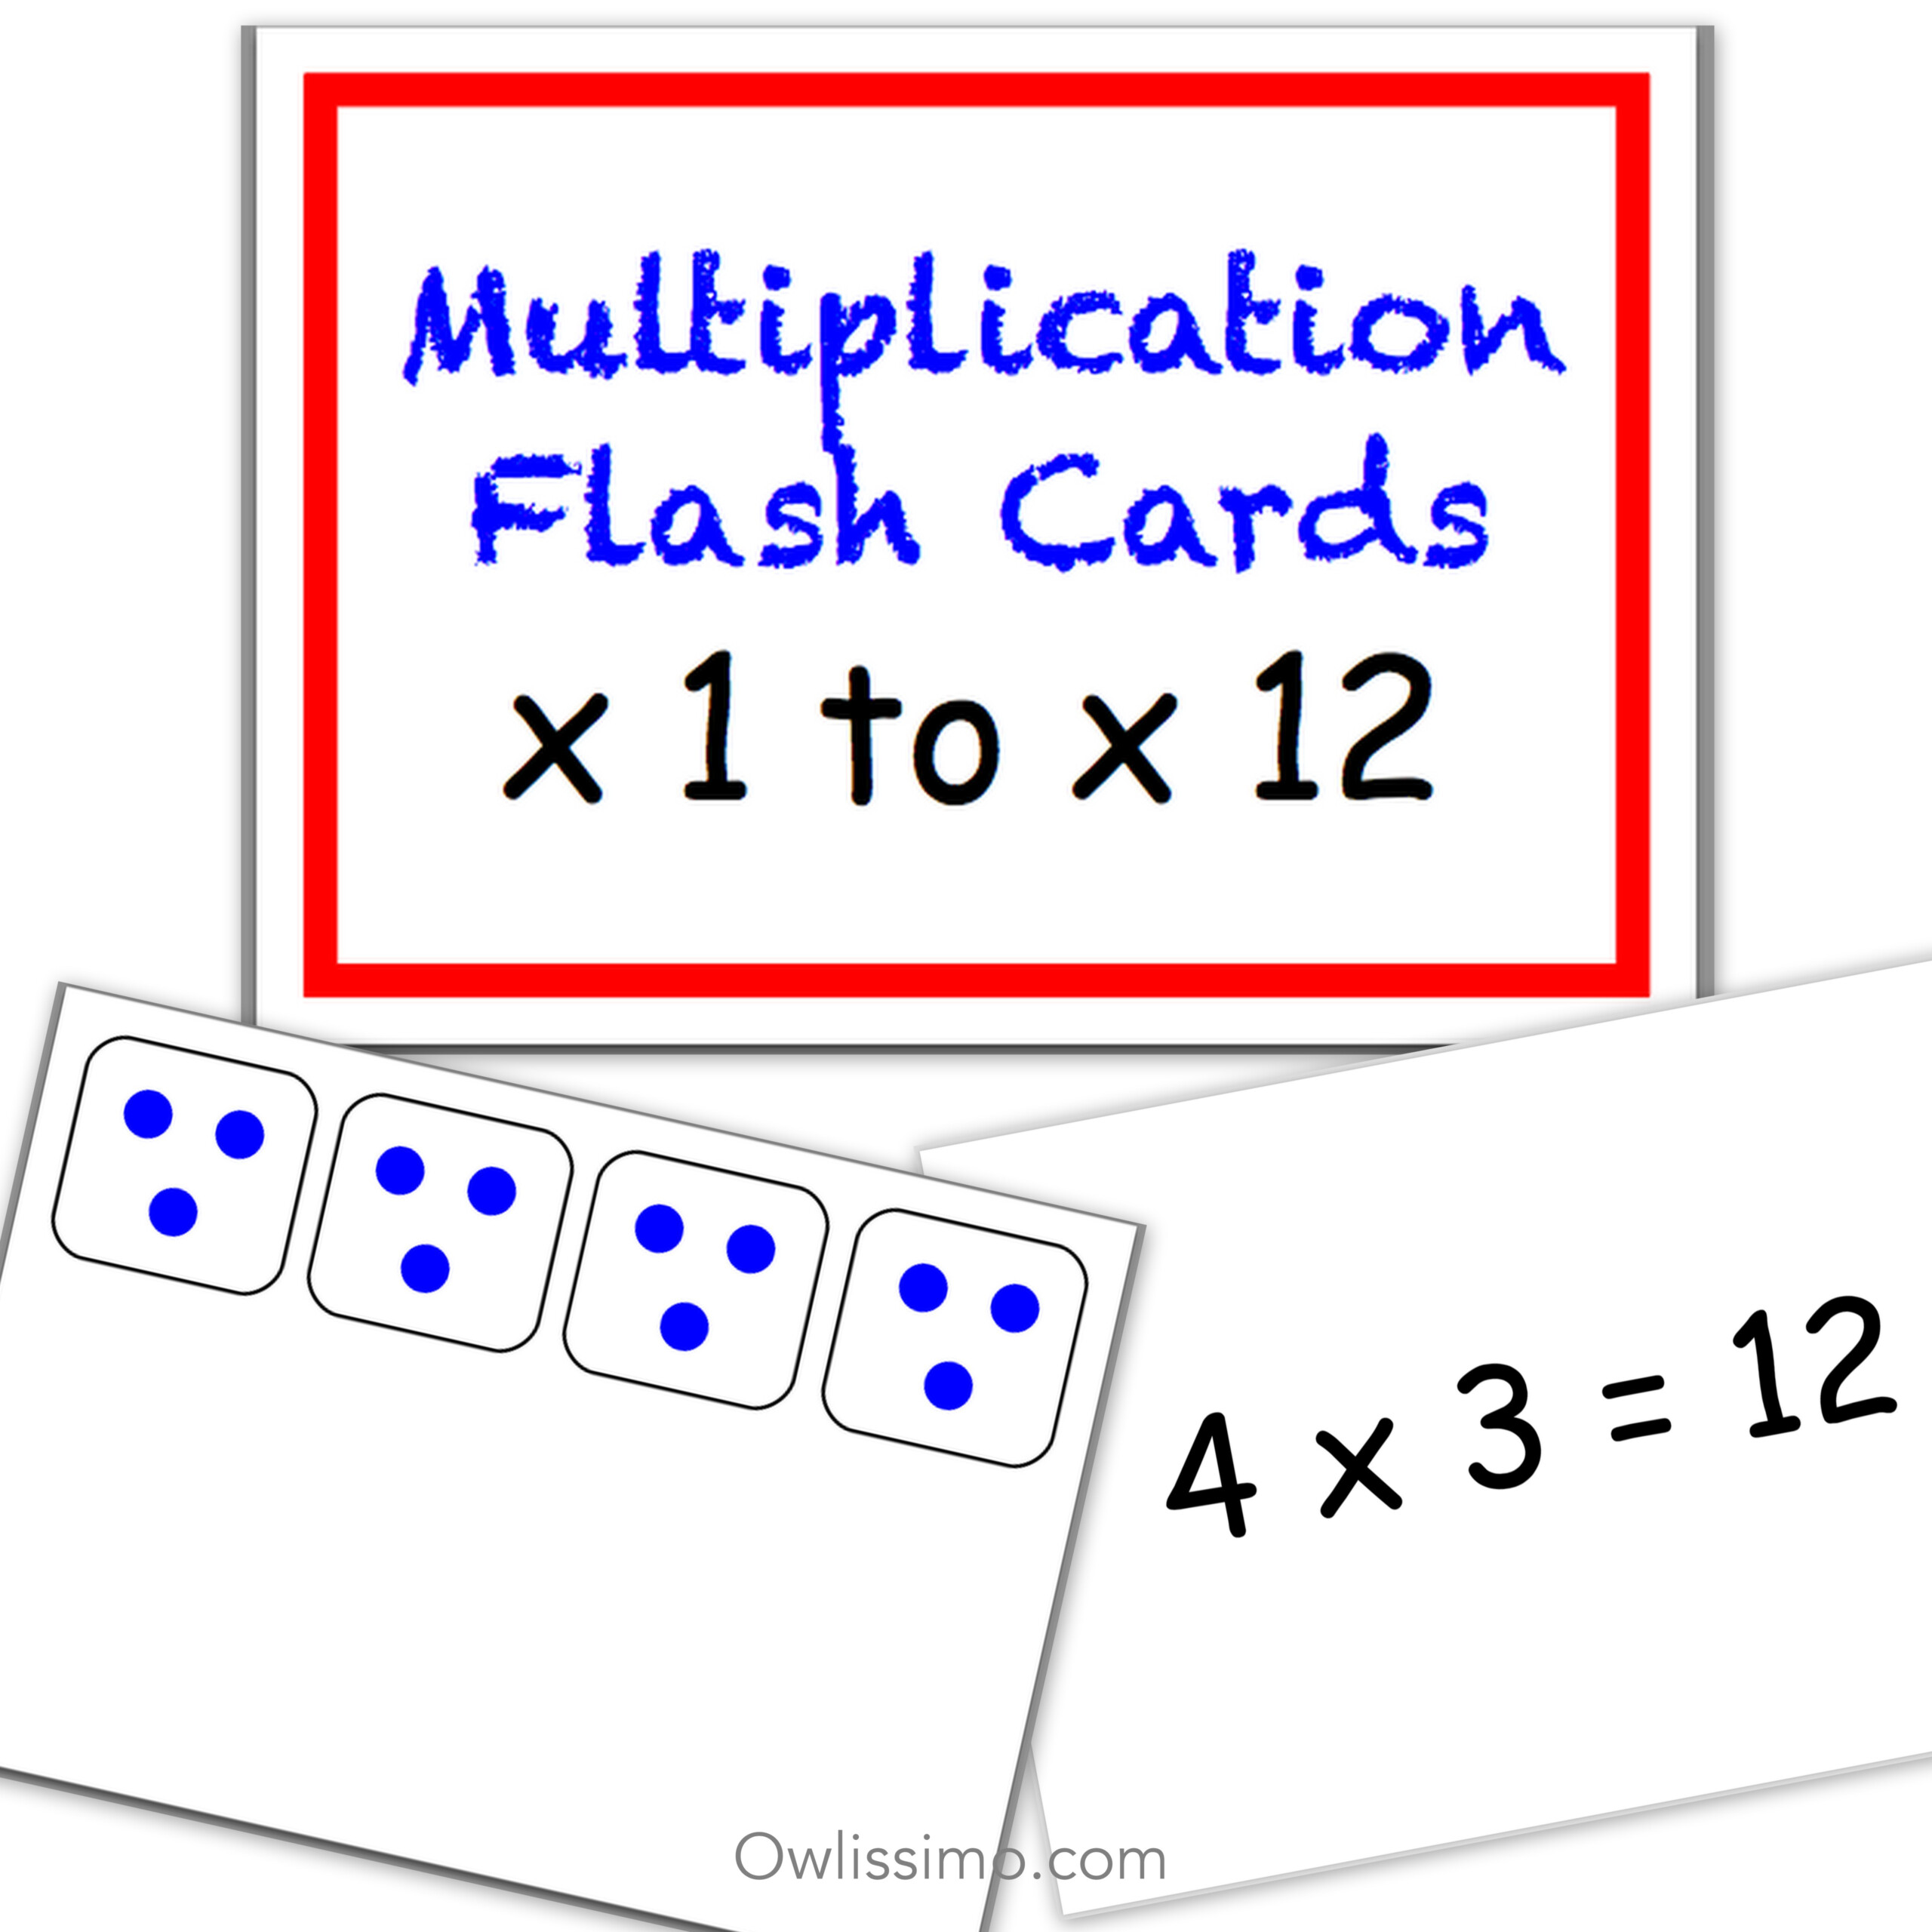 Printable Flashcards - Multiplication for Printable Multiplication Flash Cards